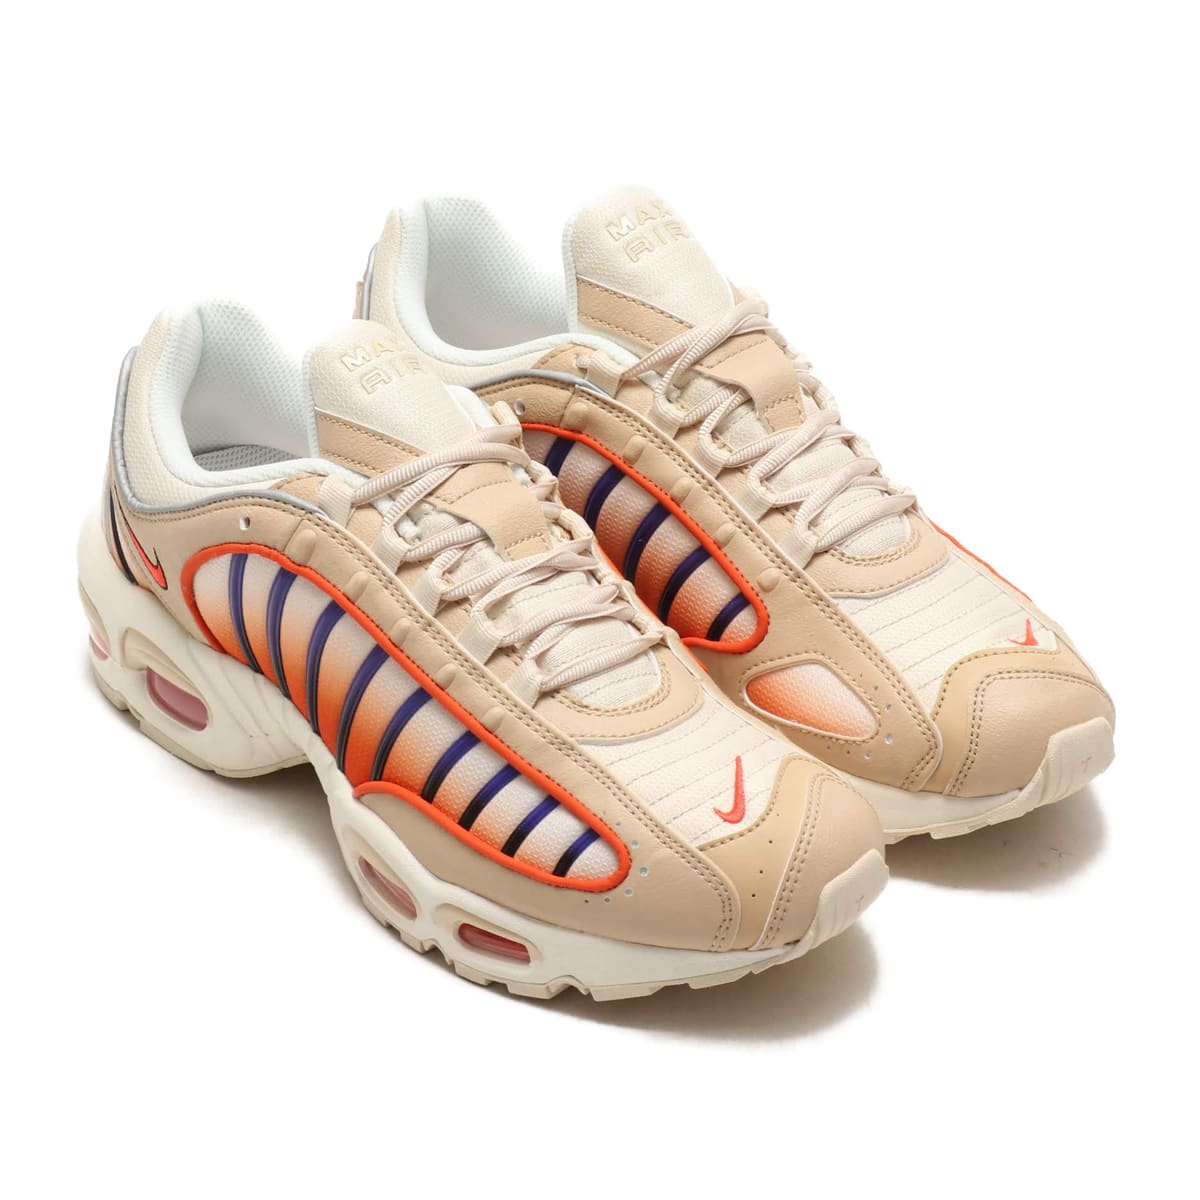 NIKE AIR MAX TAILWIND IV DSRT OR/TM ORNG-CMPFR ORNG-CRT 19SU-S_photo_large